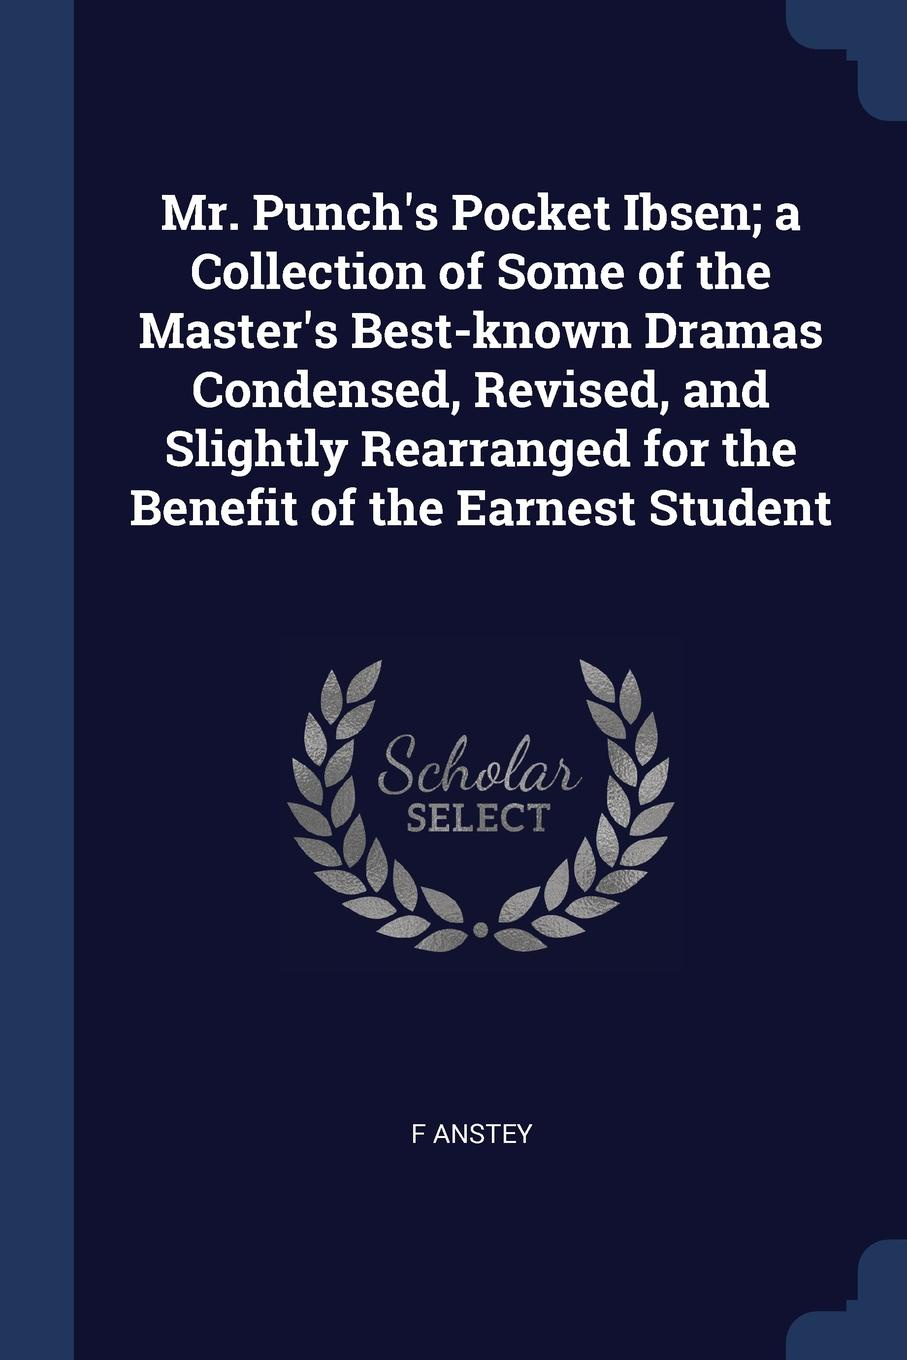 Mr. Punch.s Pocket Ibsen; a Collection of Some of the Master.s Best-known Dramas Condensed, Revised, and Slightly Rearranged for the Benefit of the Earnest Student. F Anstey